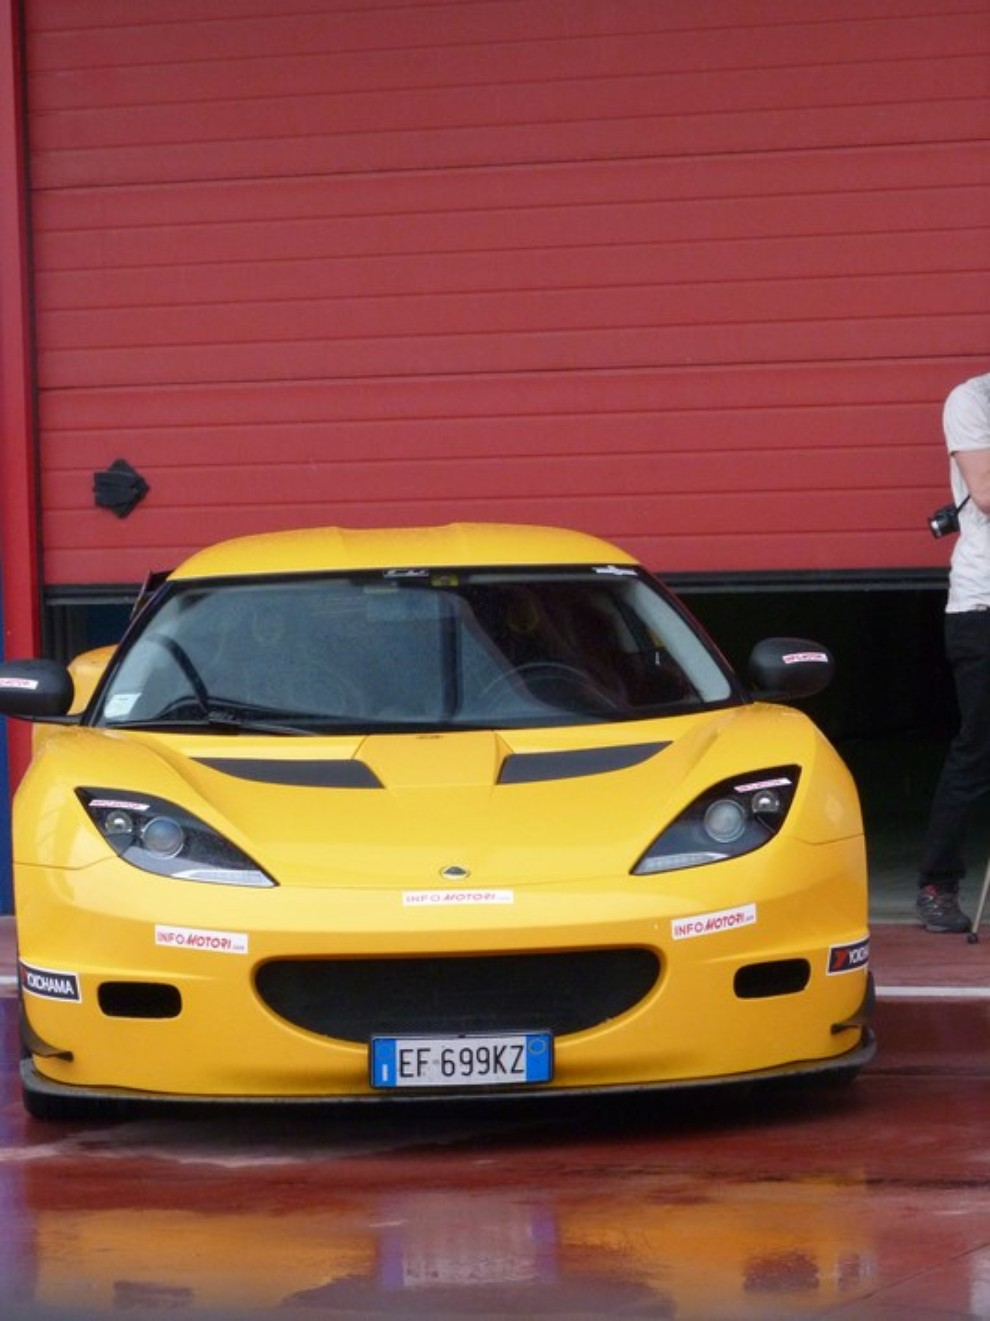 Lotus Evora S in pista con Tommy Maino - Foto 10 di 13